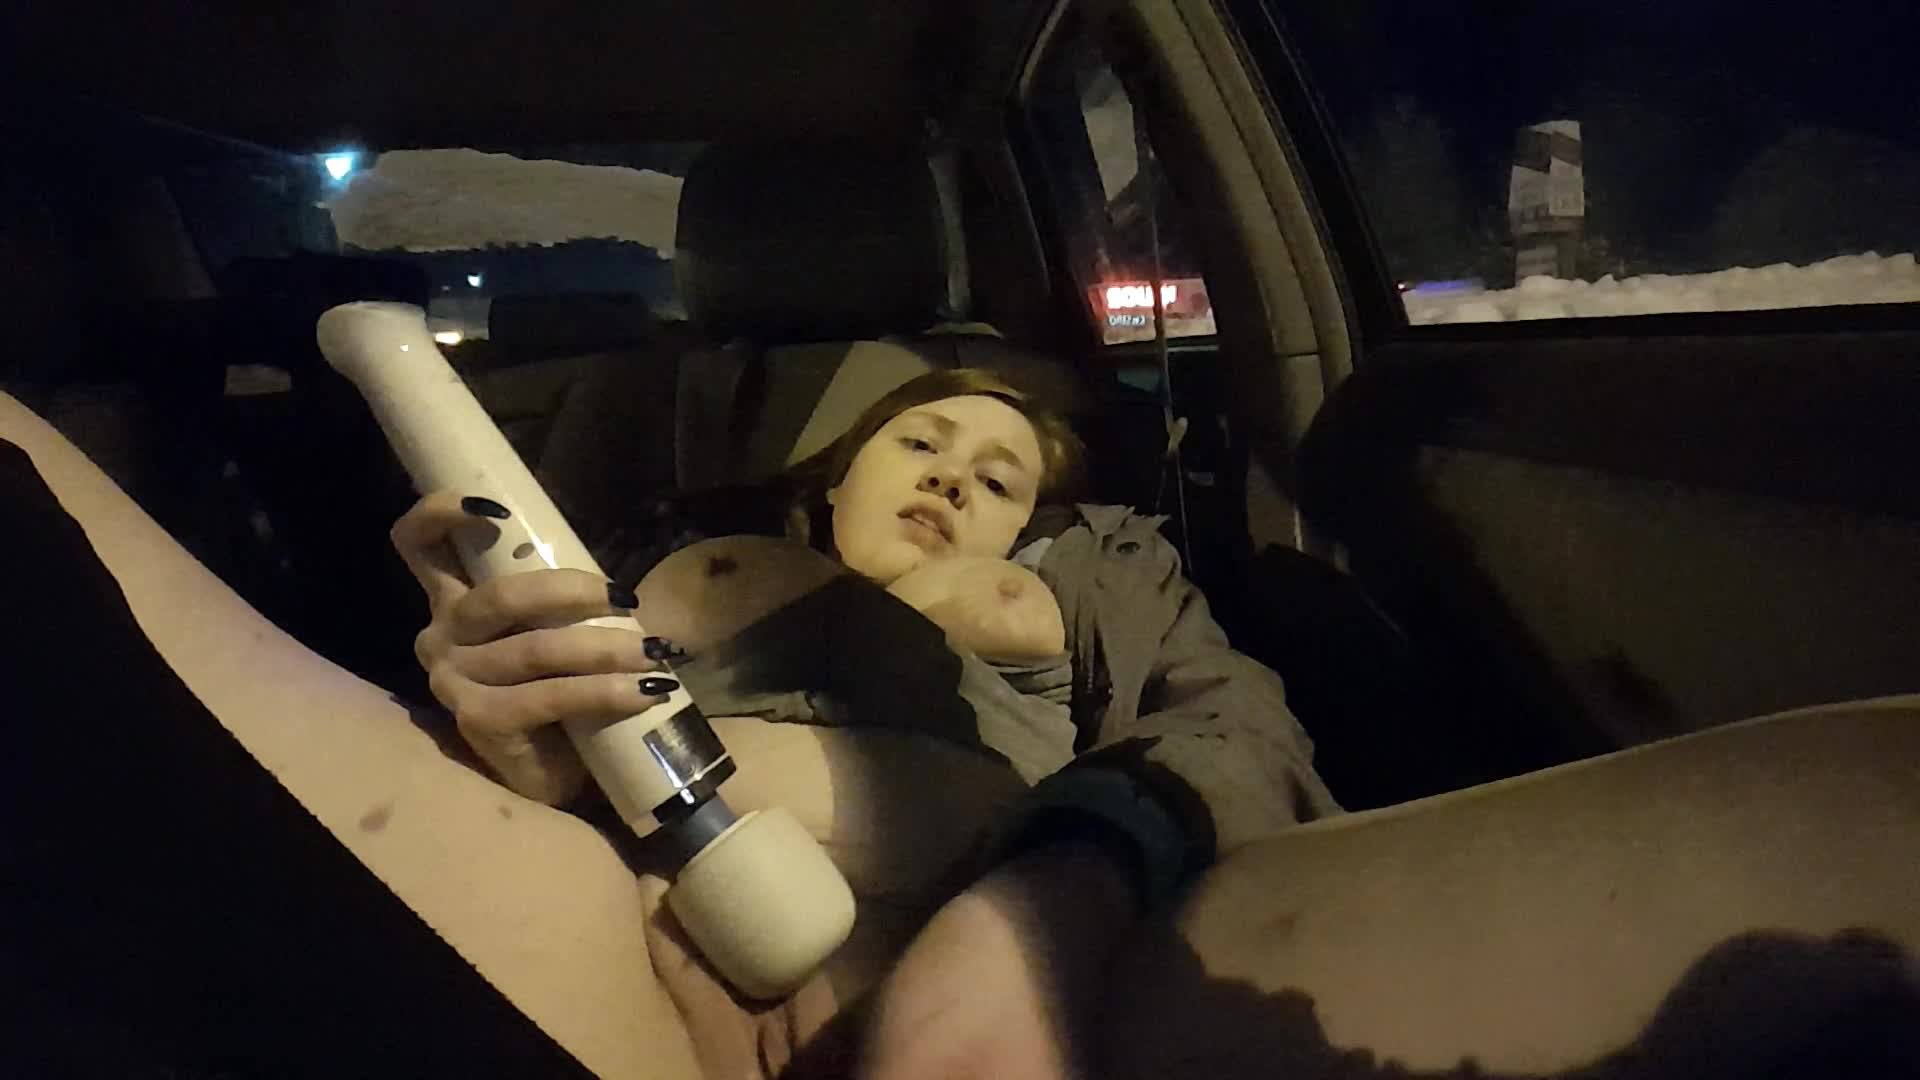 """Penelope Peach"" (Amateur, BBW, Car Sex, Public Nudity, Public Outdoor) Public Late Night Parking Lot Cum - ManyVids Production"